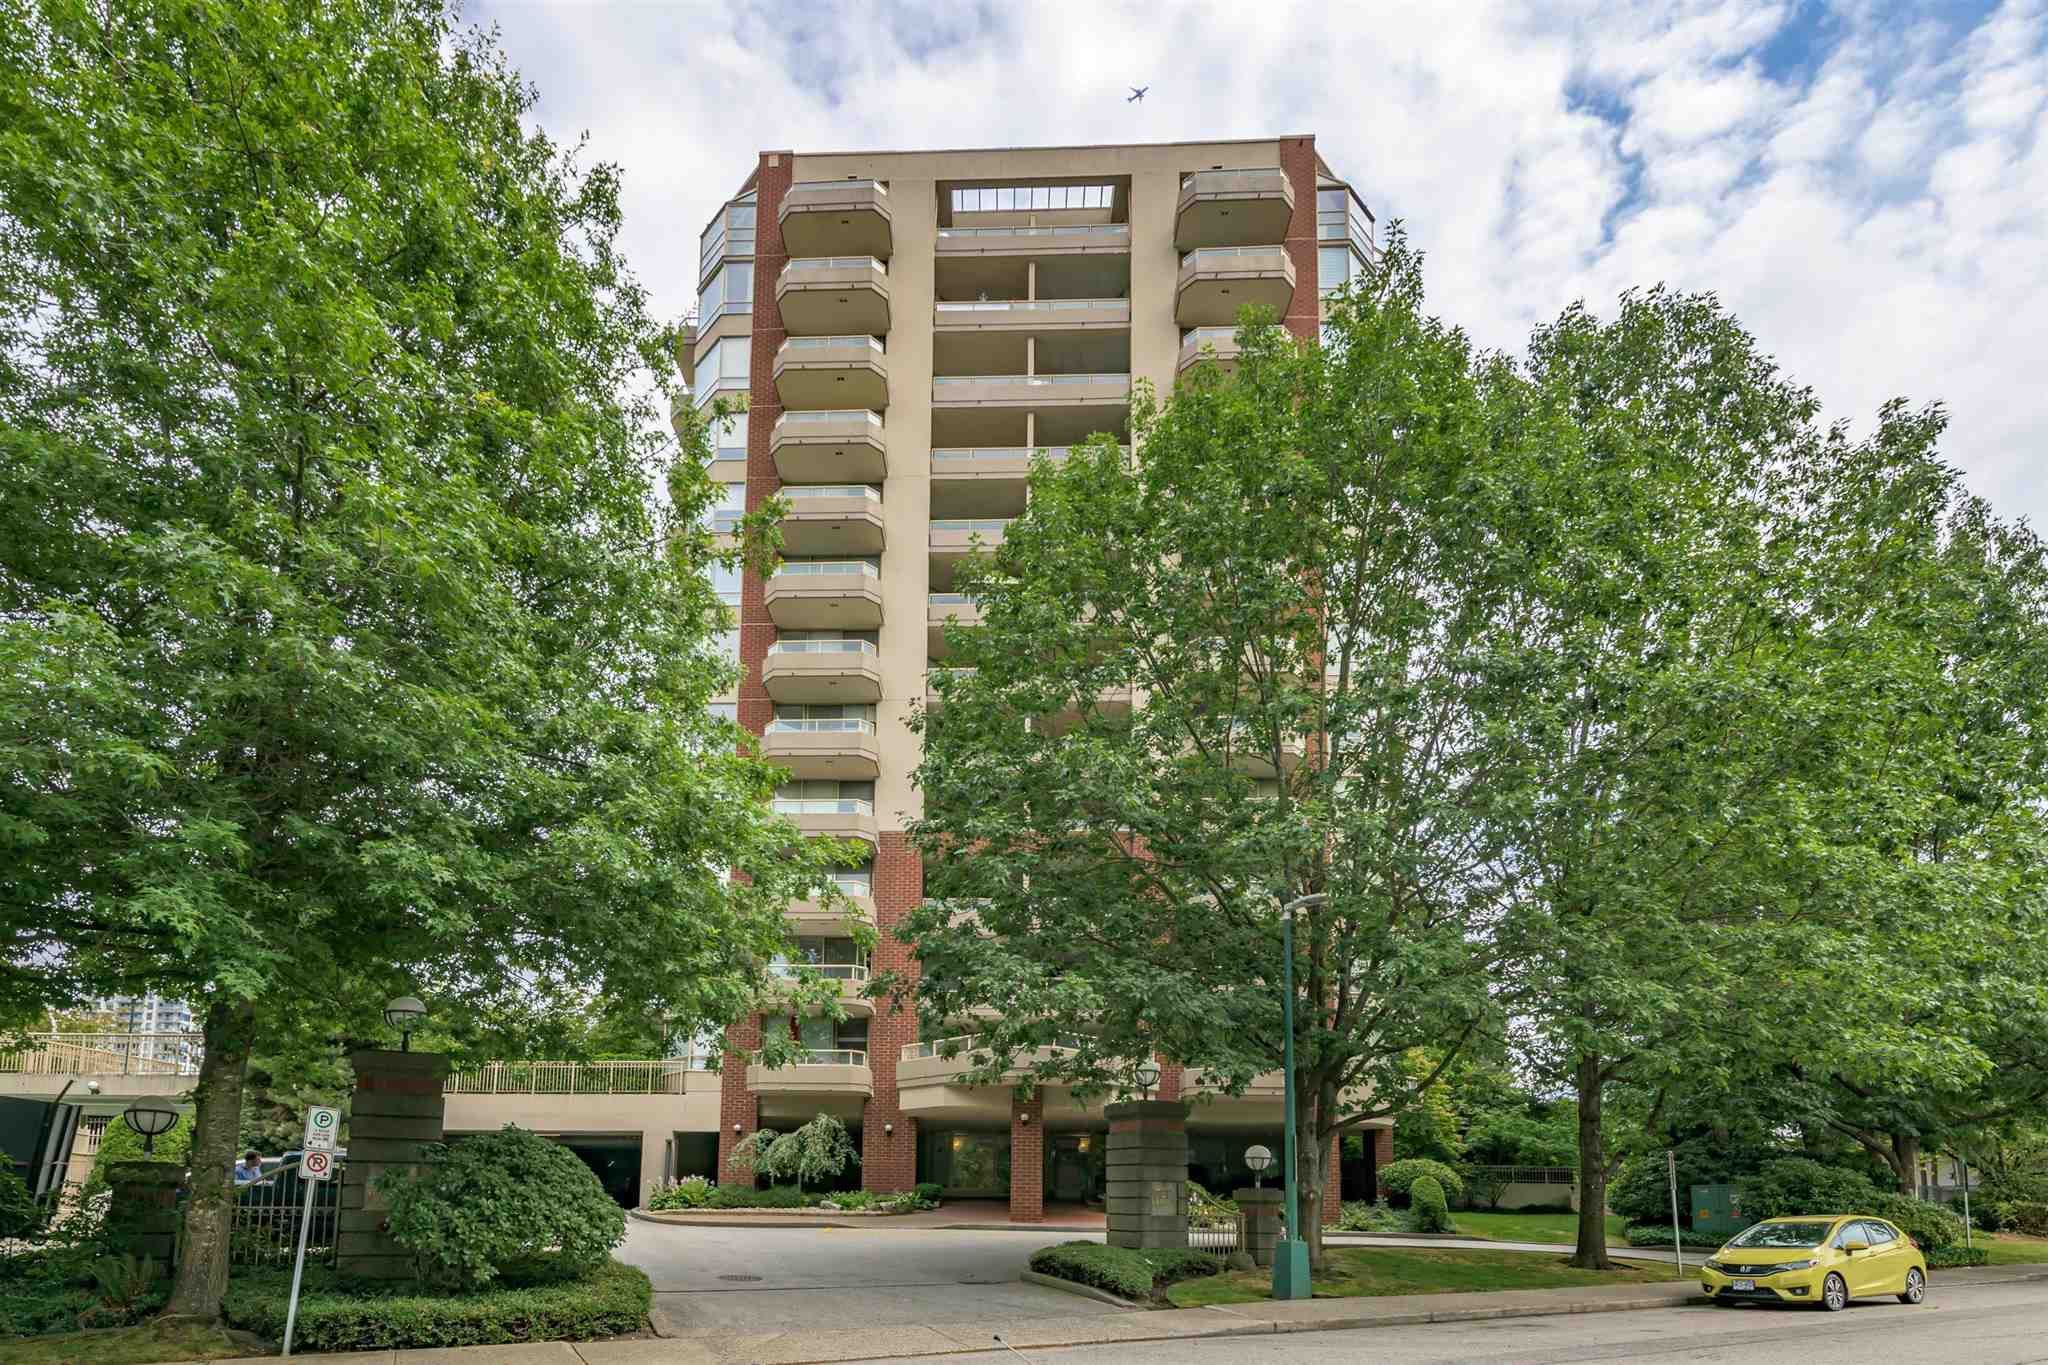 """Main Photo: 1401 728 FARROW Street in Coquitlam: Coquitlam West Condo for sale in """"THE VICTORIA"""" : MLS®# R2615321"""